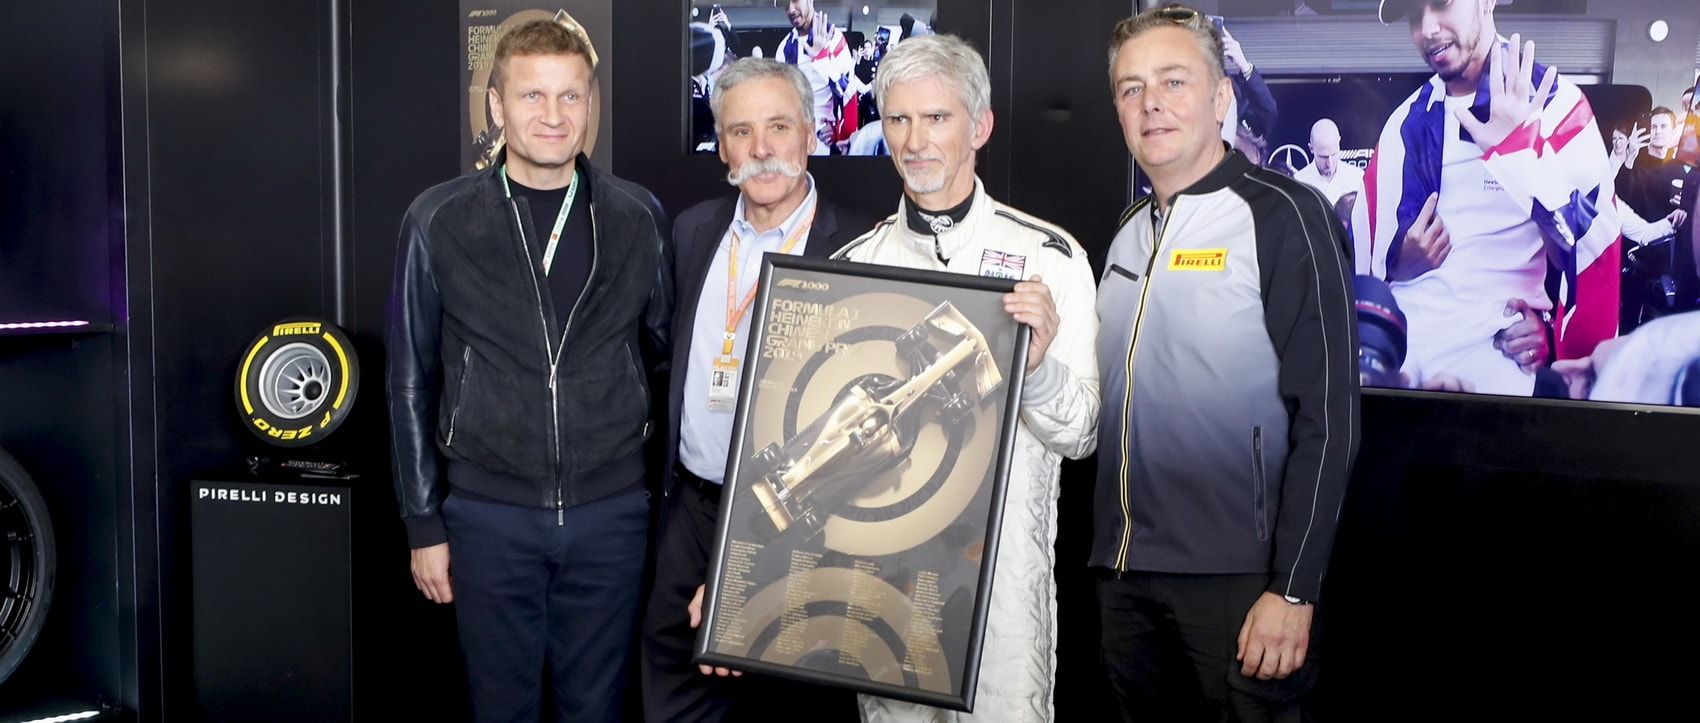 Automobilist unveiled the Formula 1® 1000th Grand Prix™ posters at the FORMULA 1 HEINEKEN CHINESE GRAND PRIX 2019